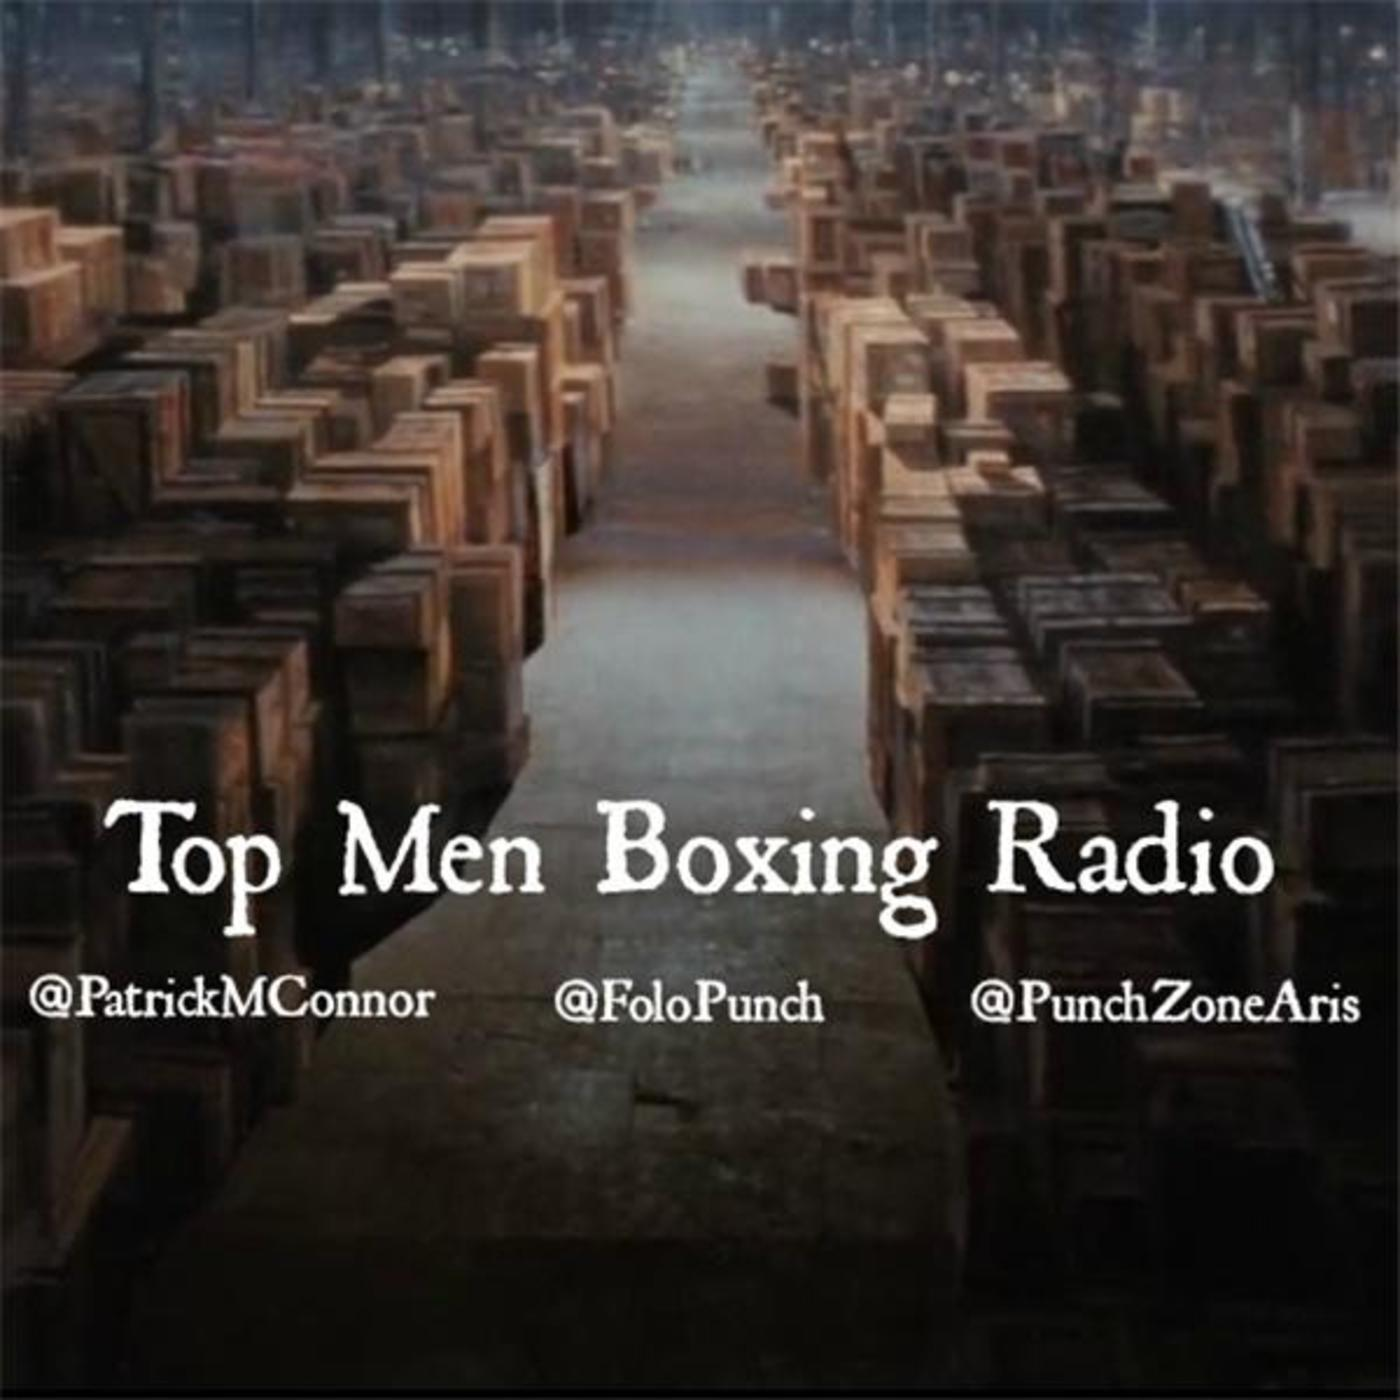 Top Men Boxing Radio